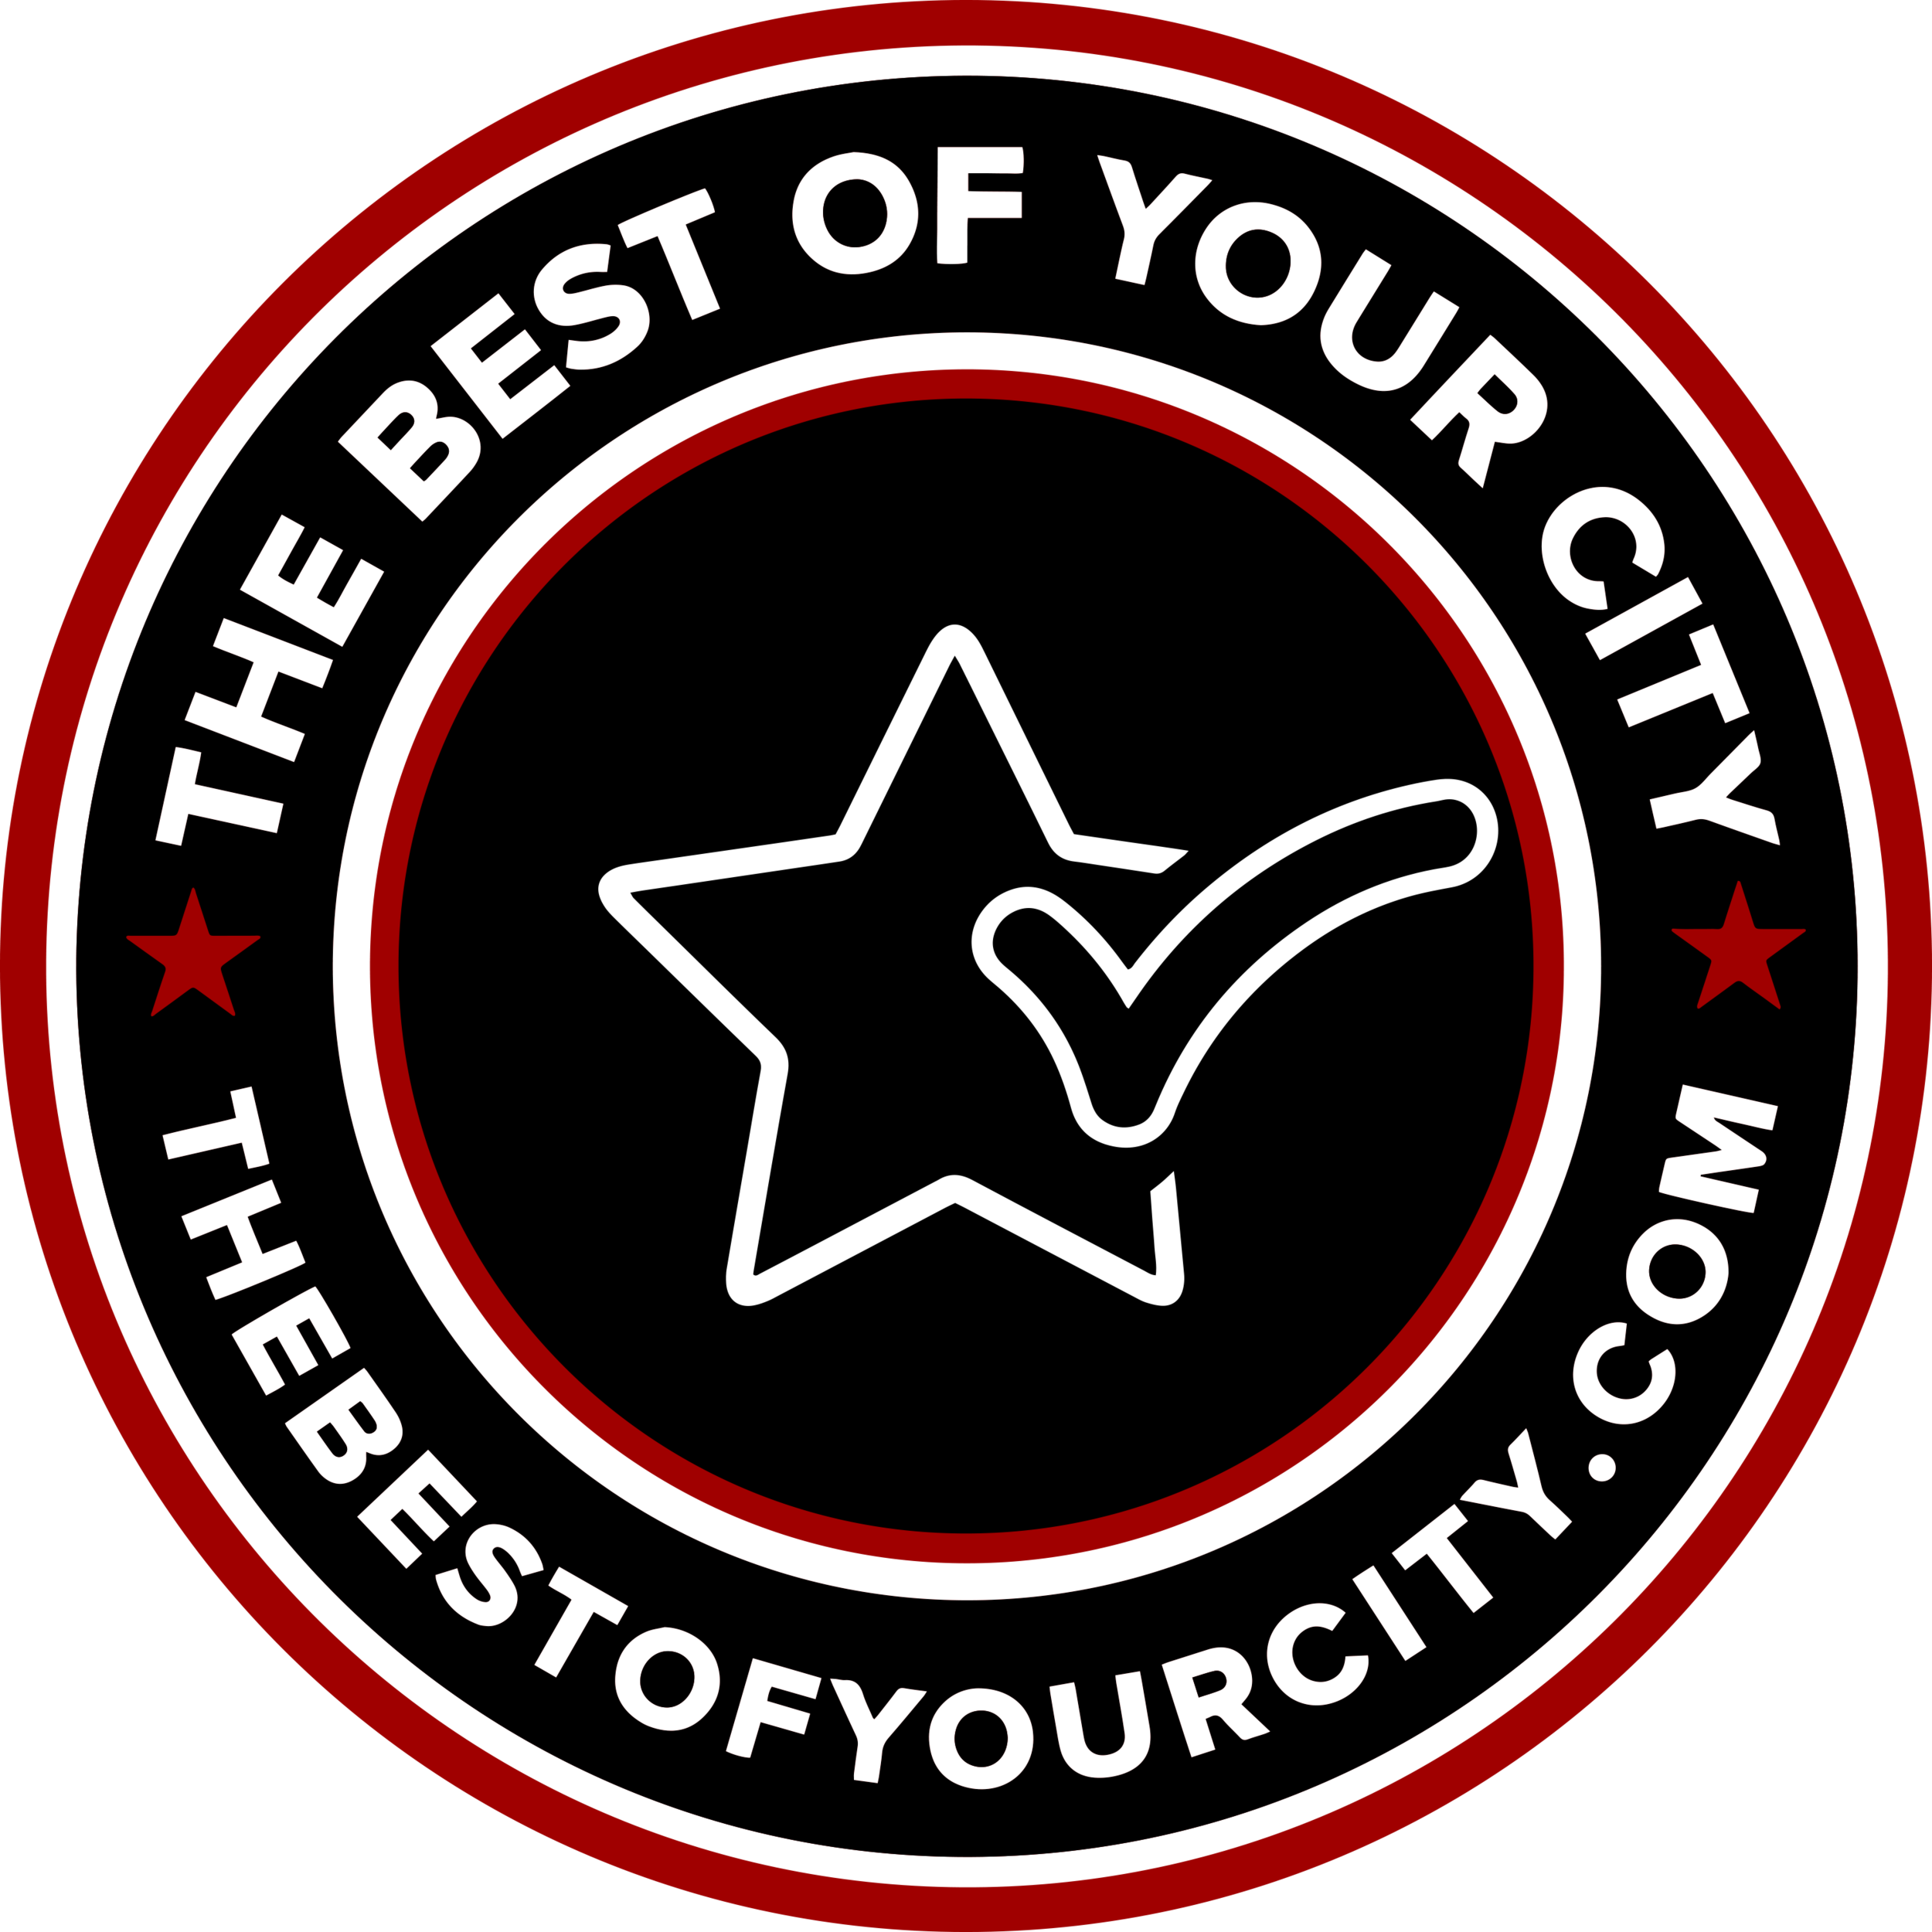 BEST OF YOUR CITY 3 copy (1).PNG